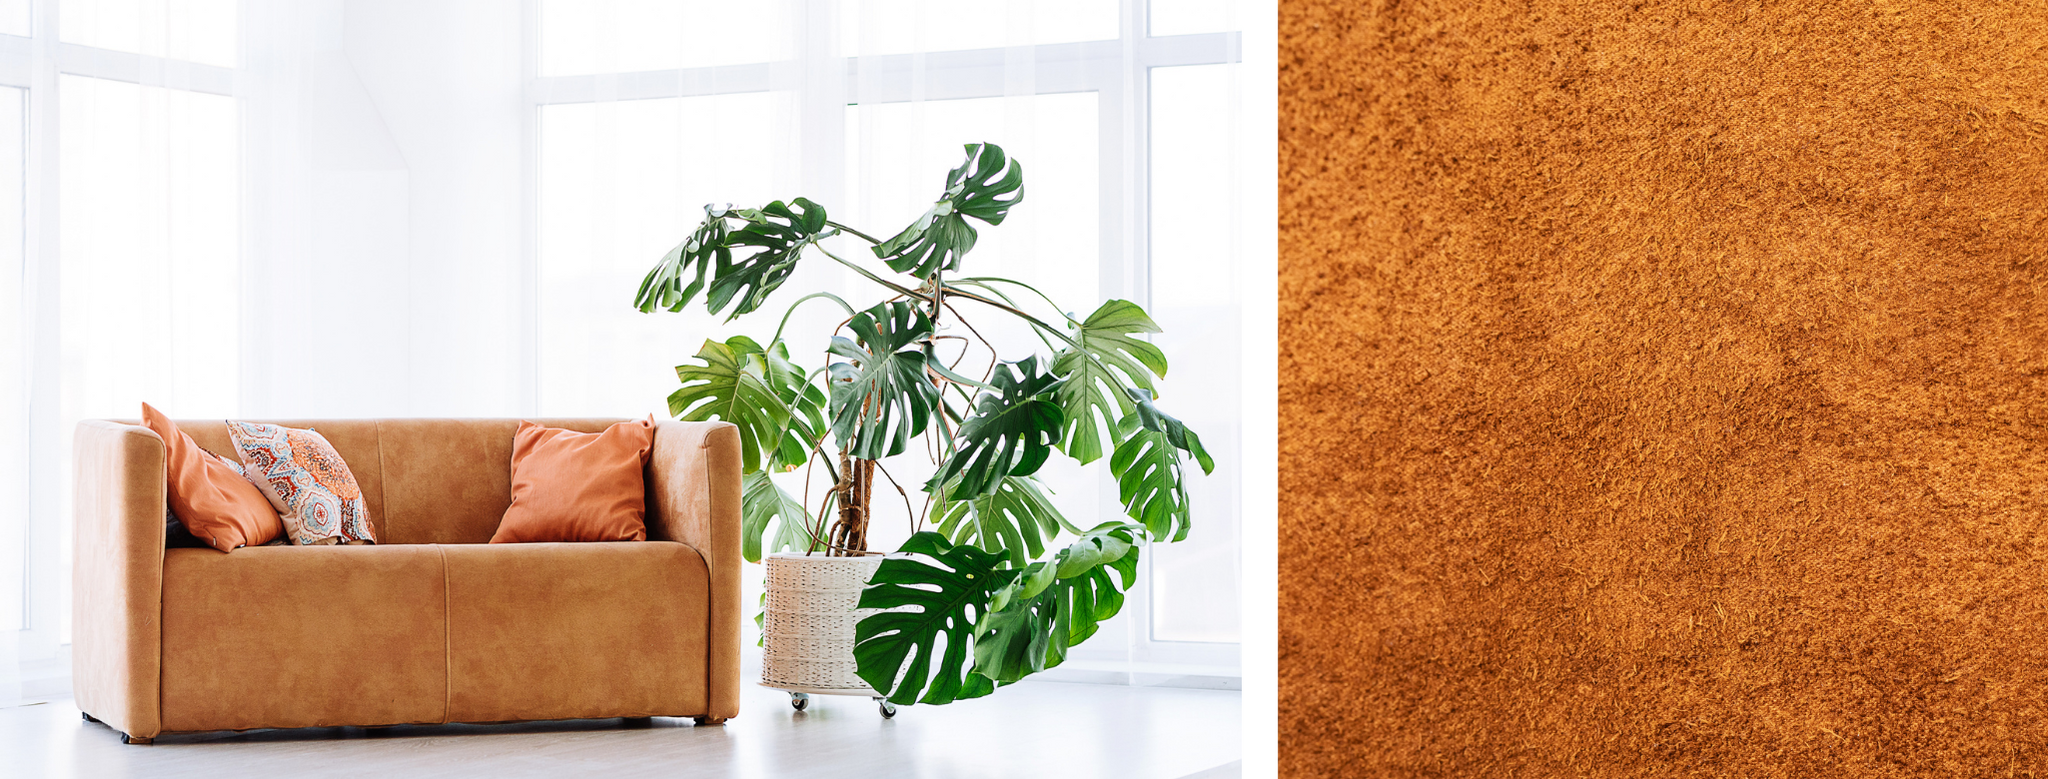 Caring for Suede Furniture